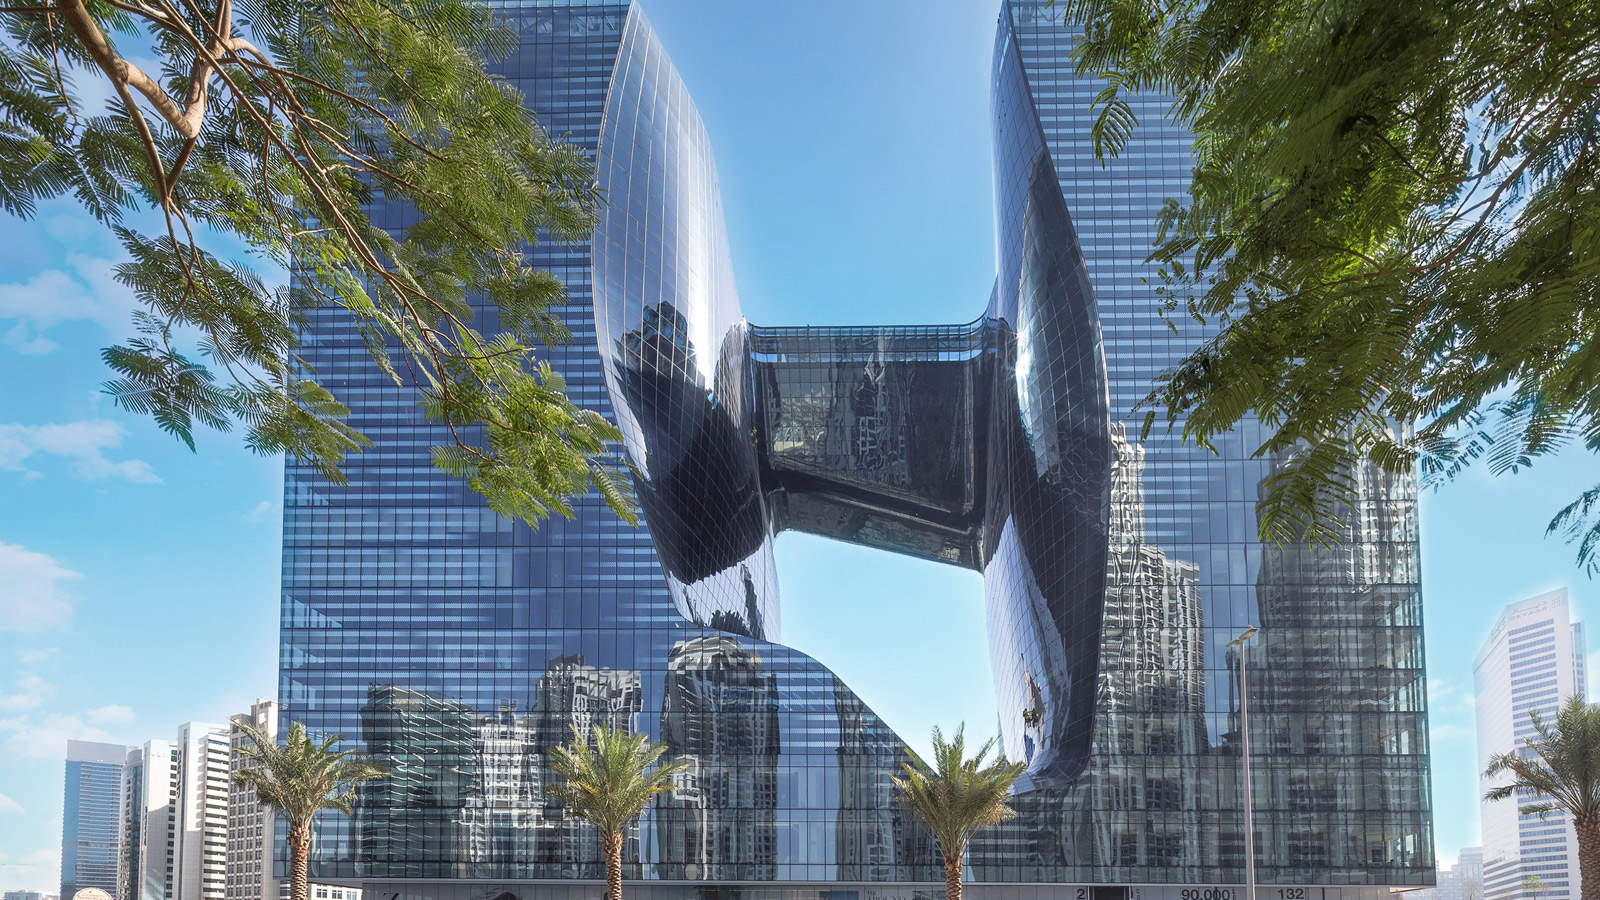 Hotel Me Dubai, the last architectural work by Zaha Hadid